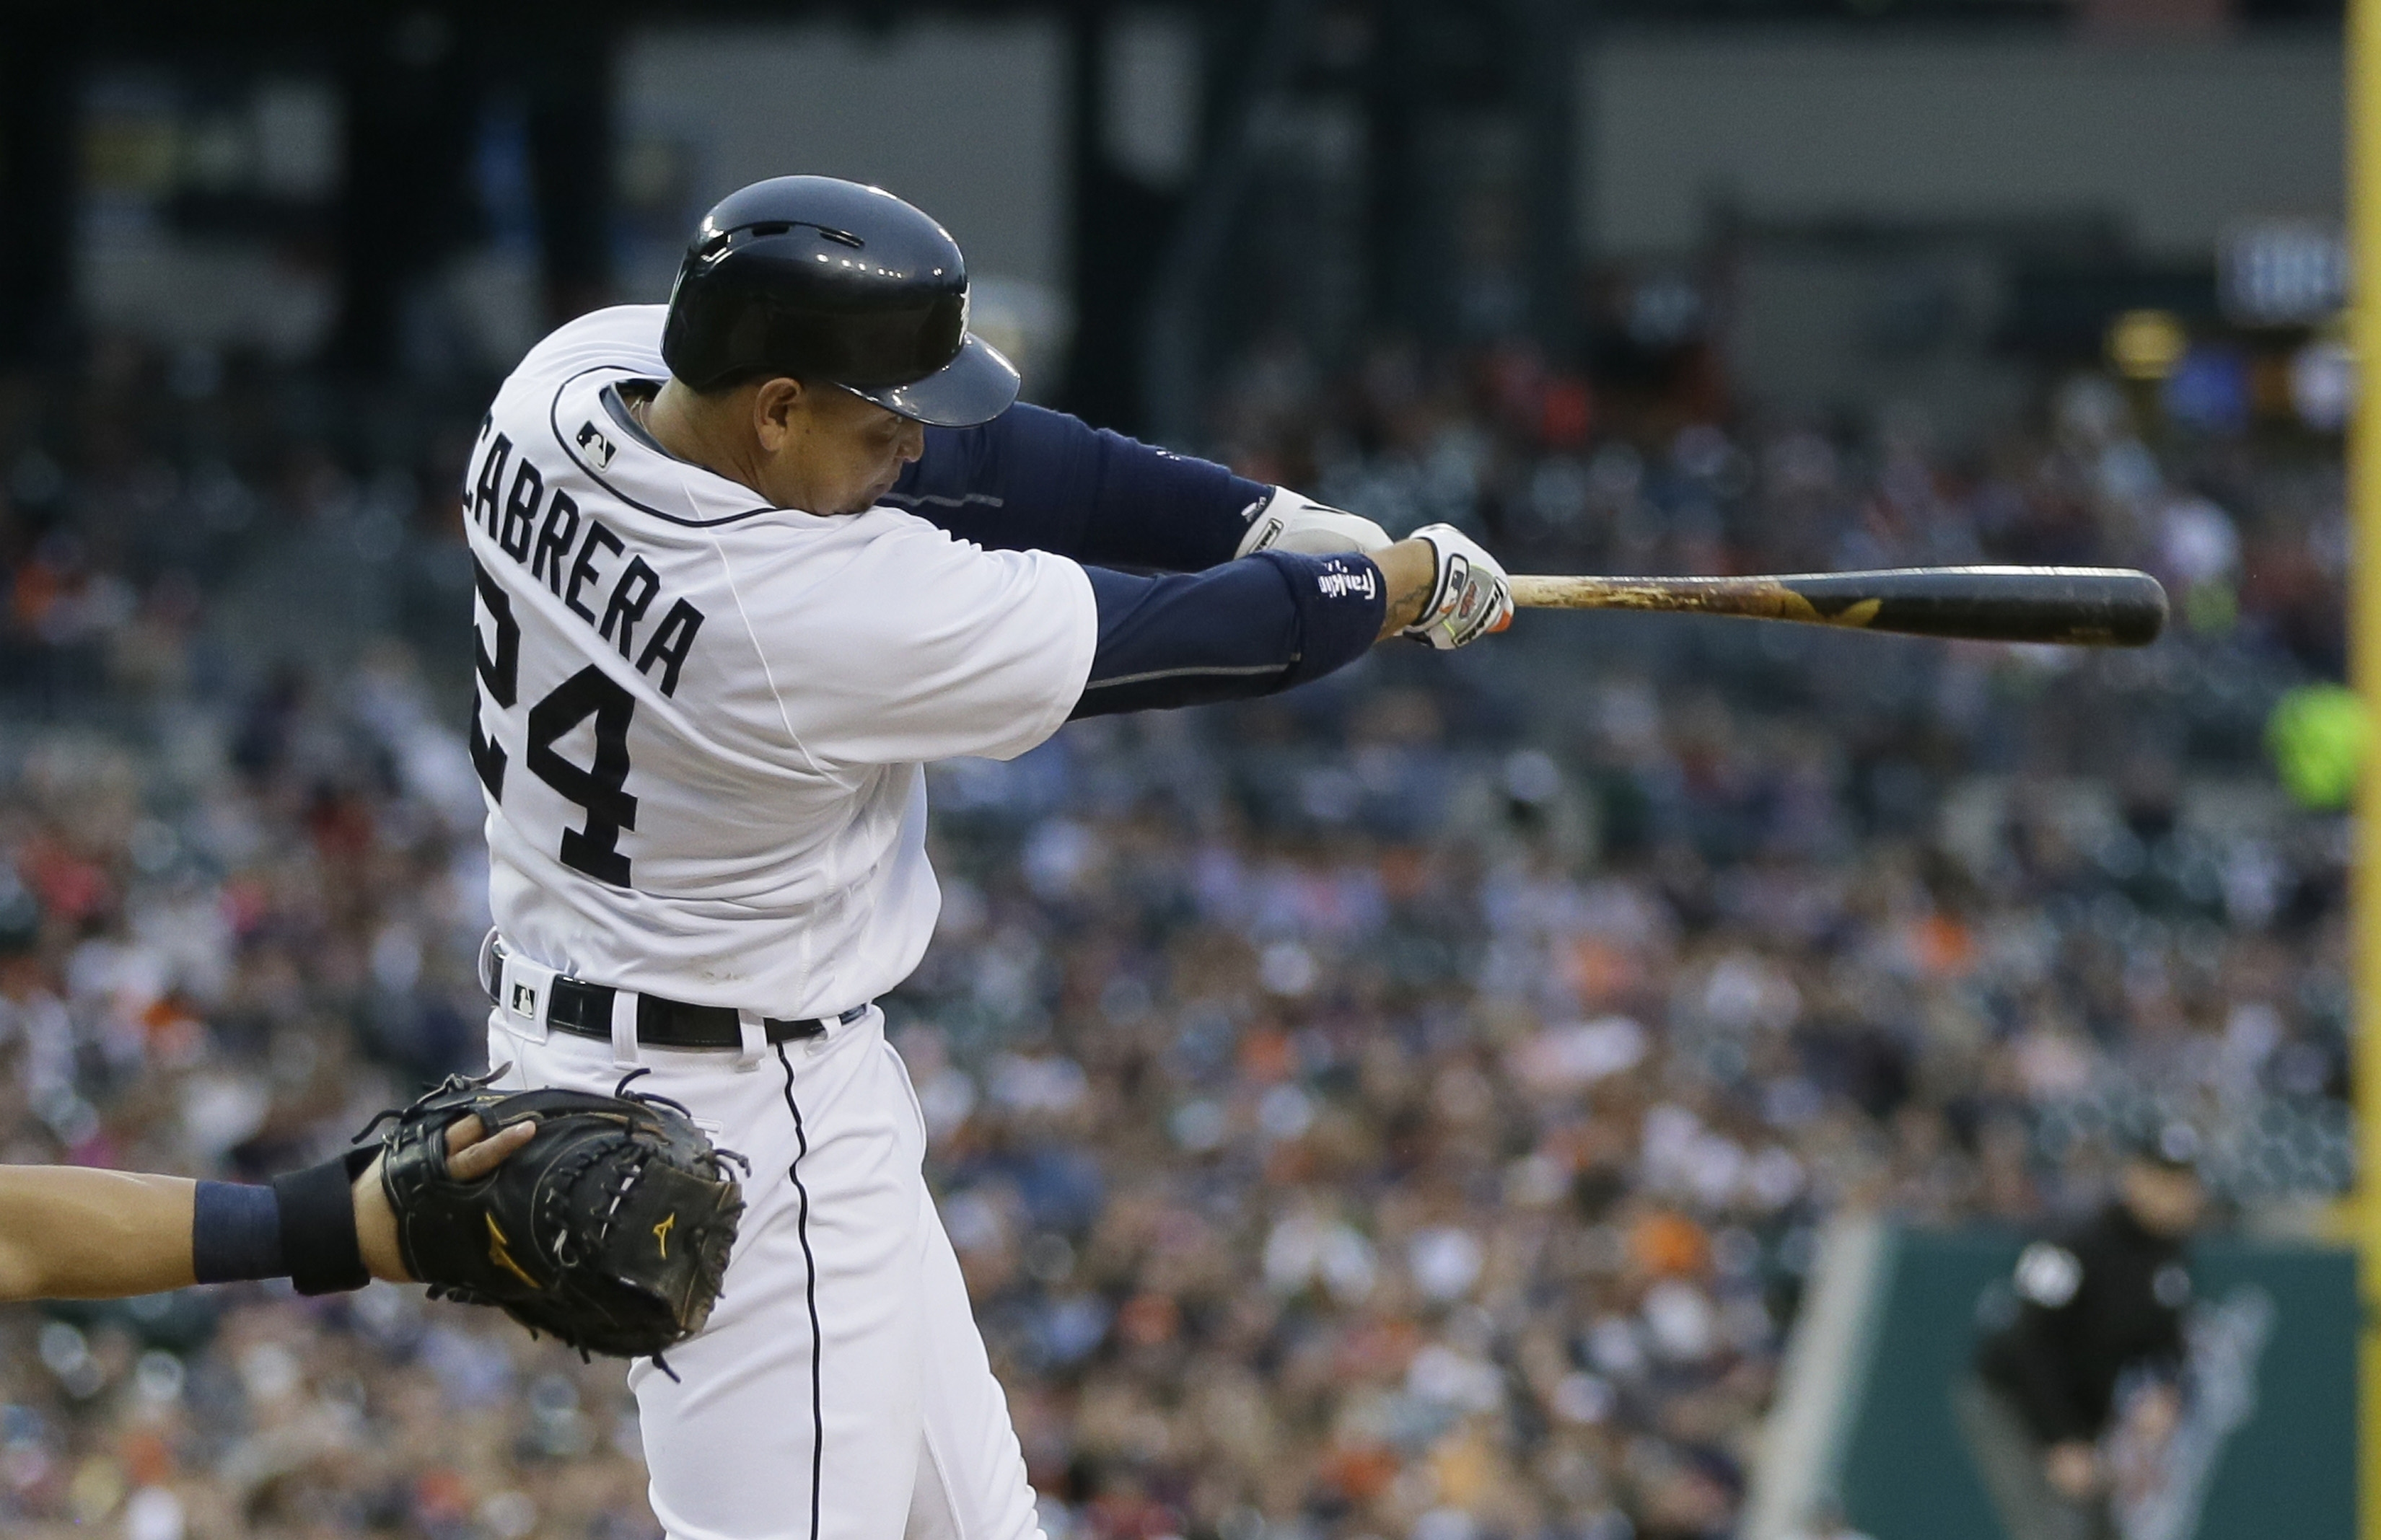 Detroit Tigers' Miguel Cabrera connects for a two-run home run during the third inning of a baseball game against the Tampa Bay Rays, Friday, May 20, 2016, in Detroit. (AP Photo/Carlos Osorio)